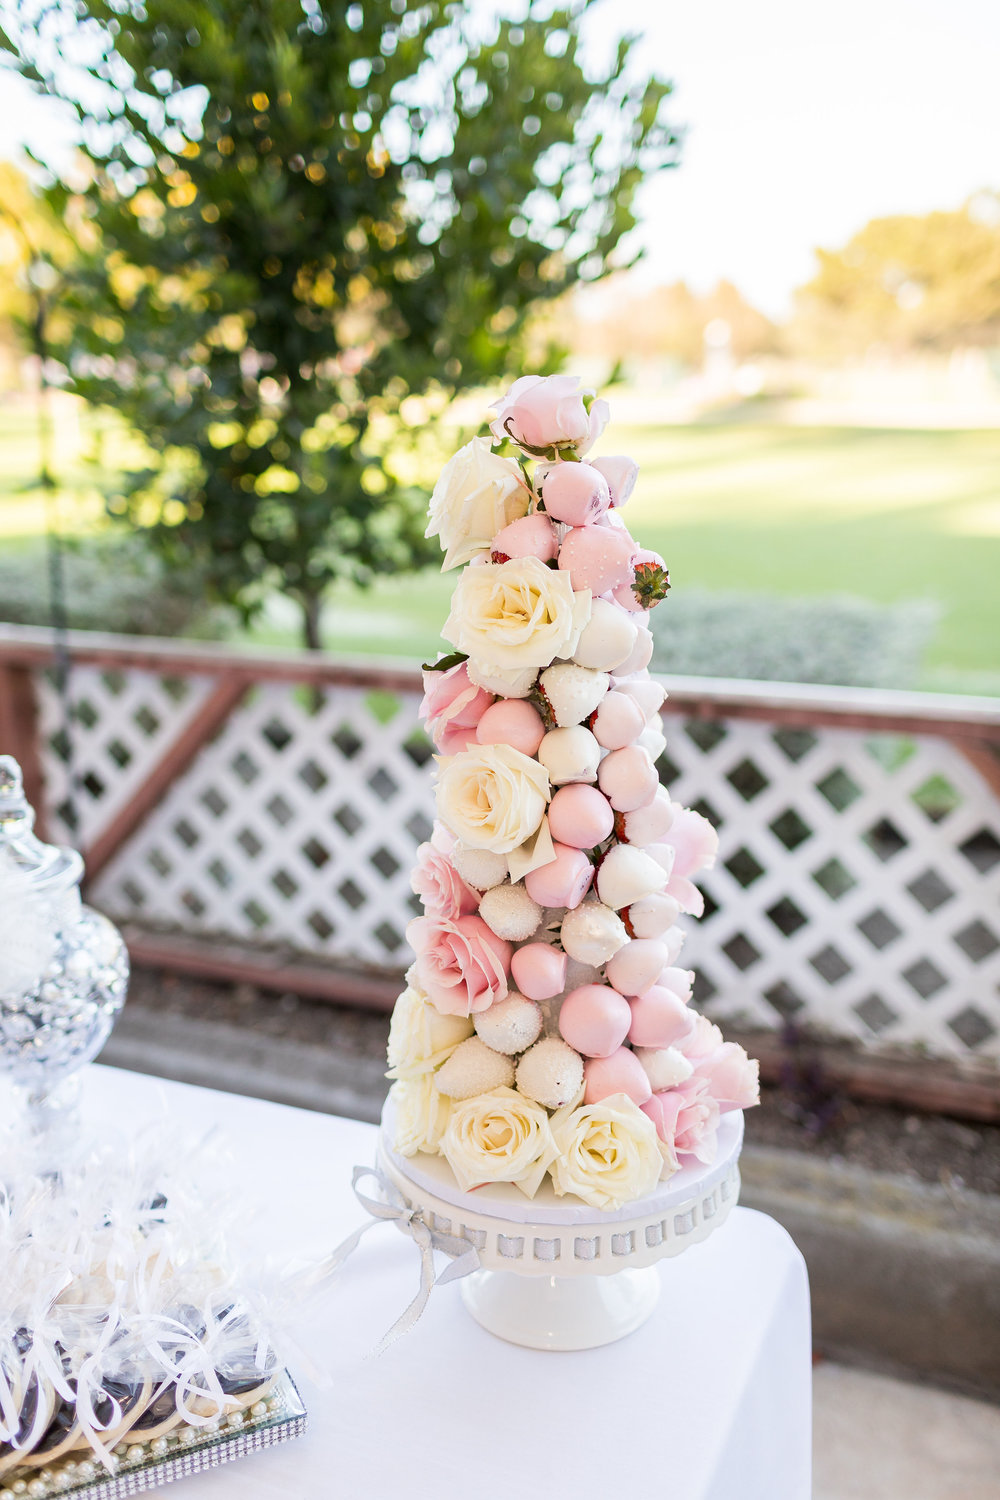 Wedding Dessert Table Snack Inspo Pic.jpg